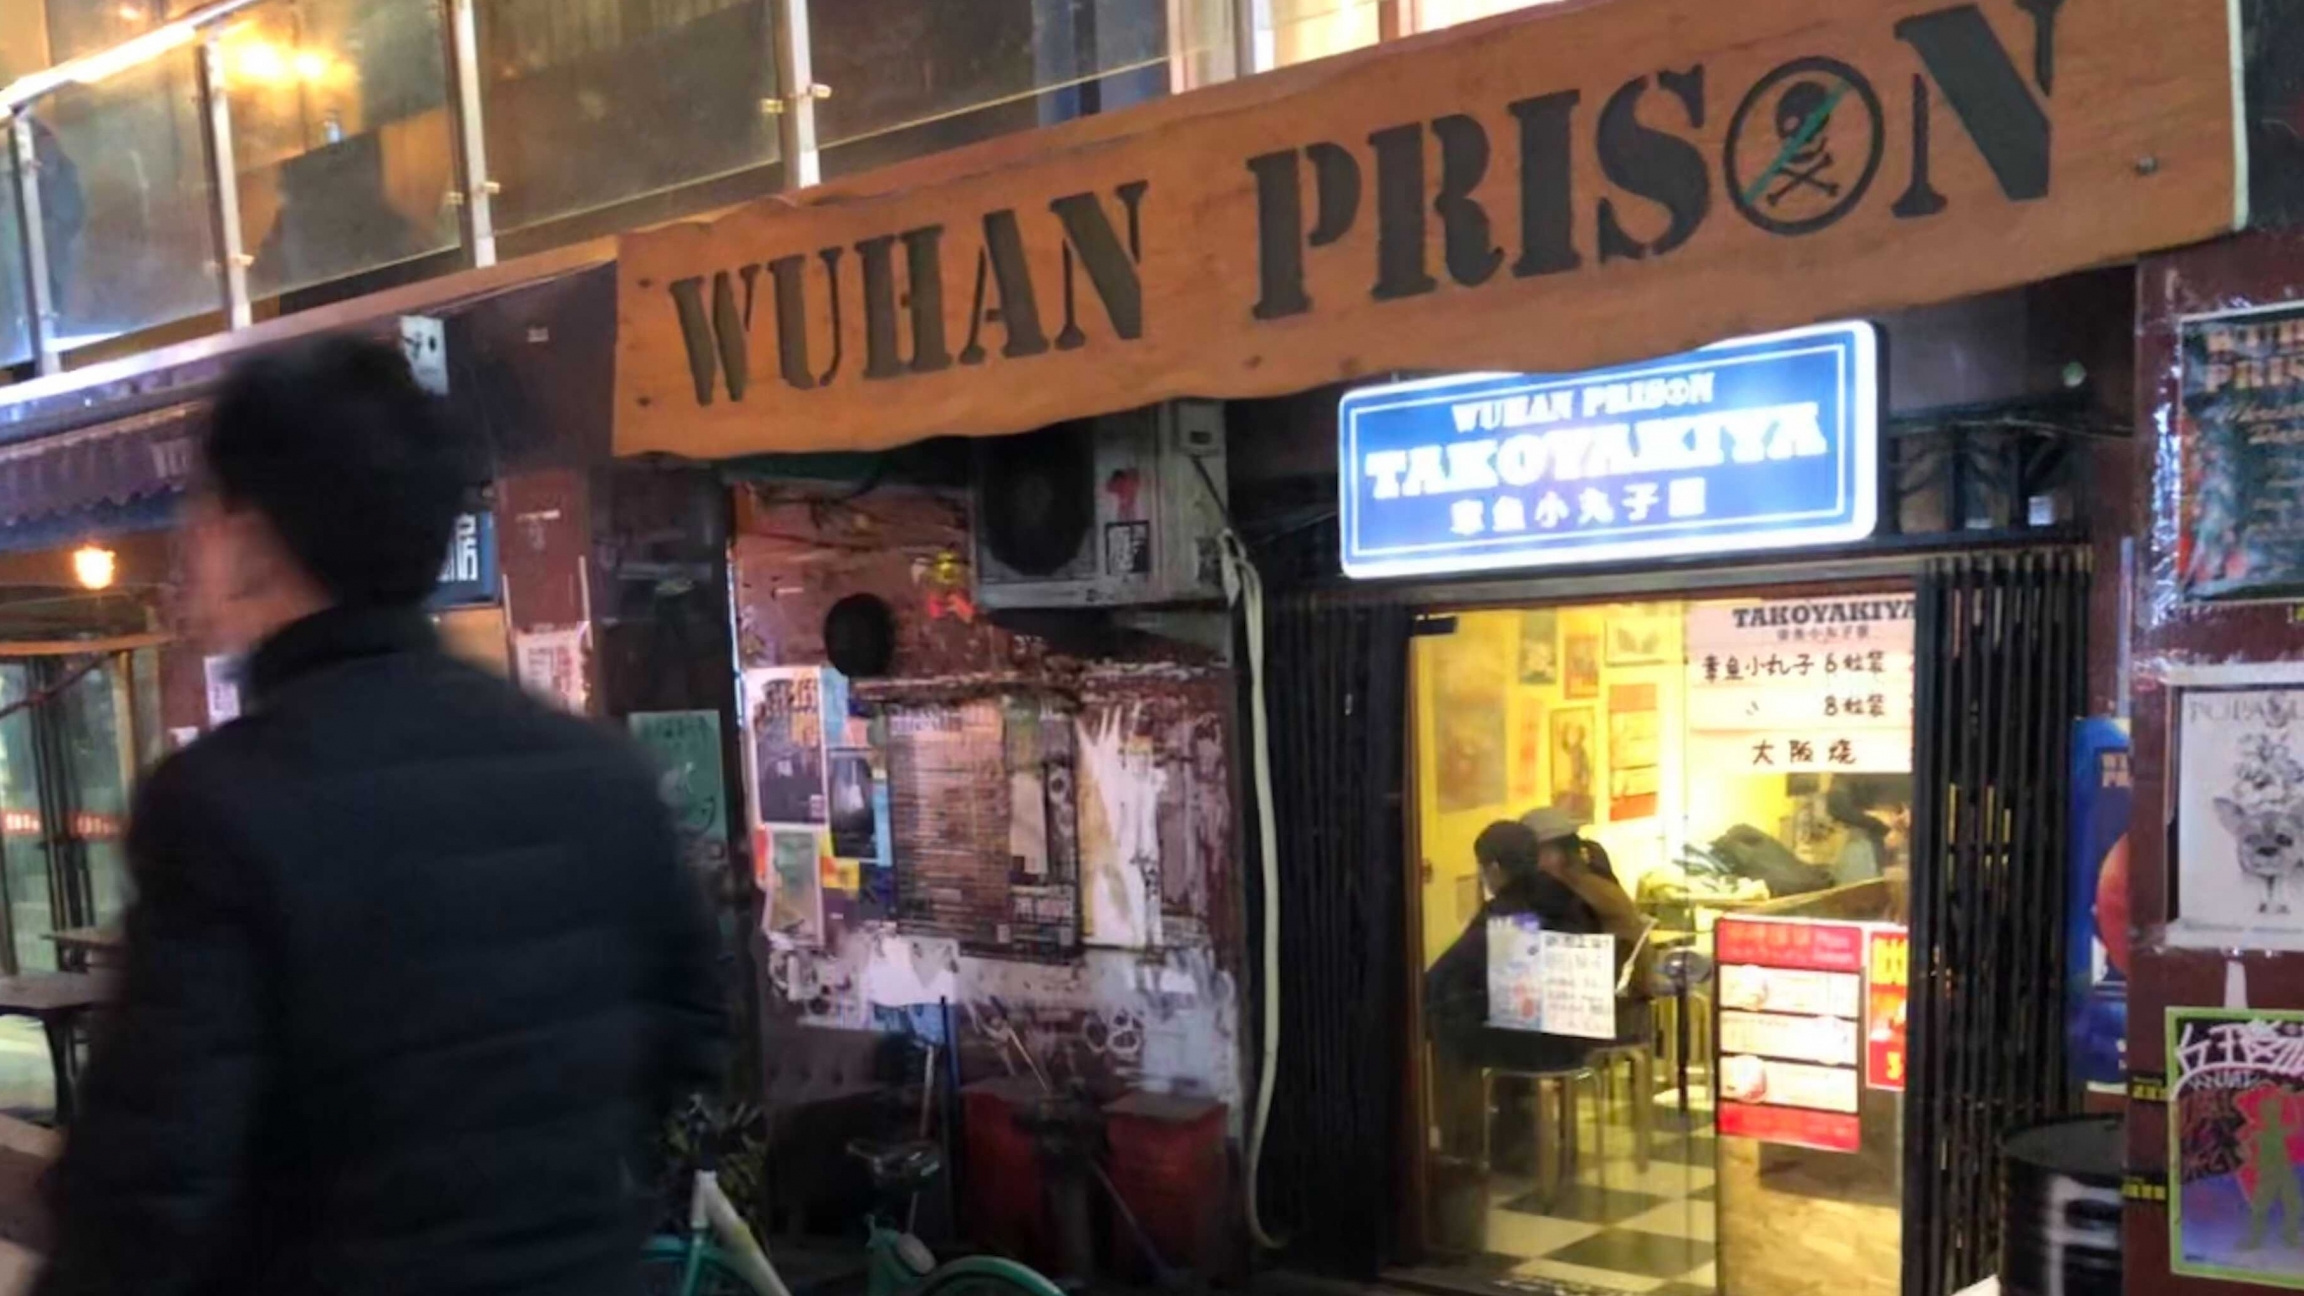 Wuhan Prison is a dive bar that holds about 200 people in Wuhan, China.